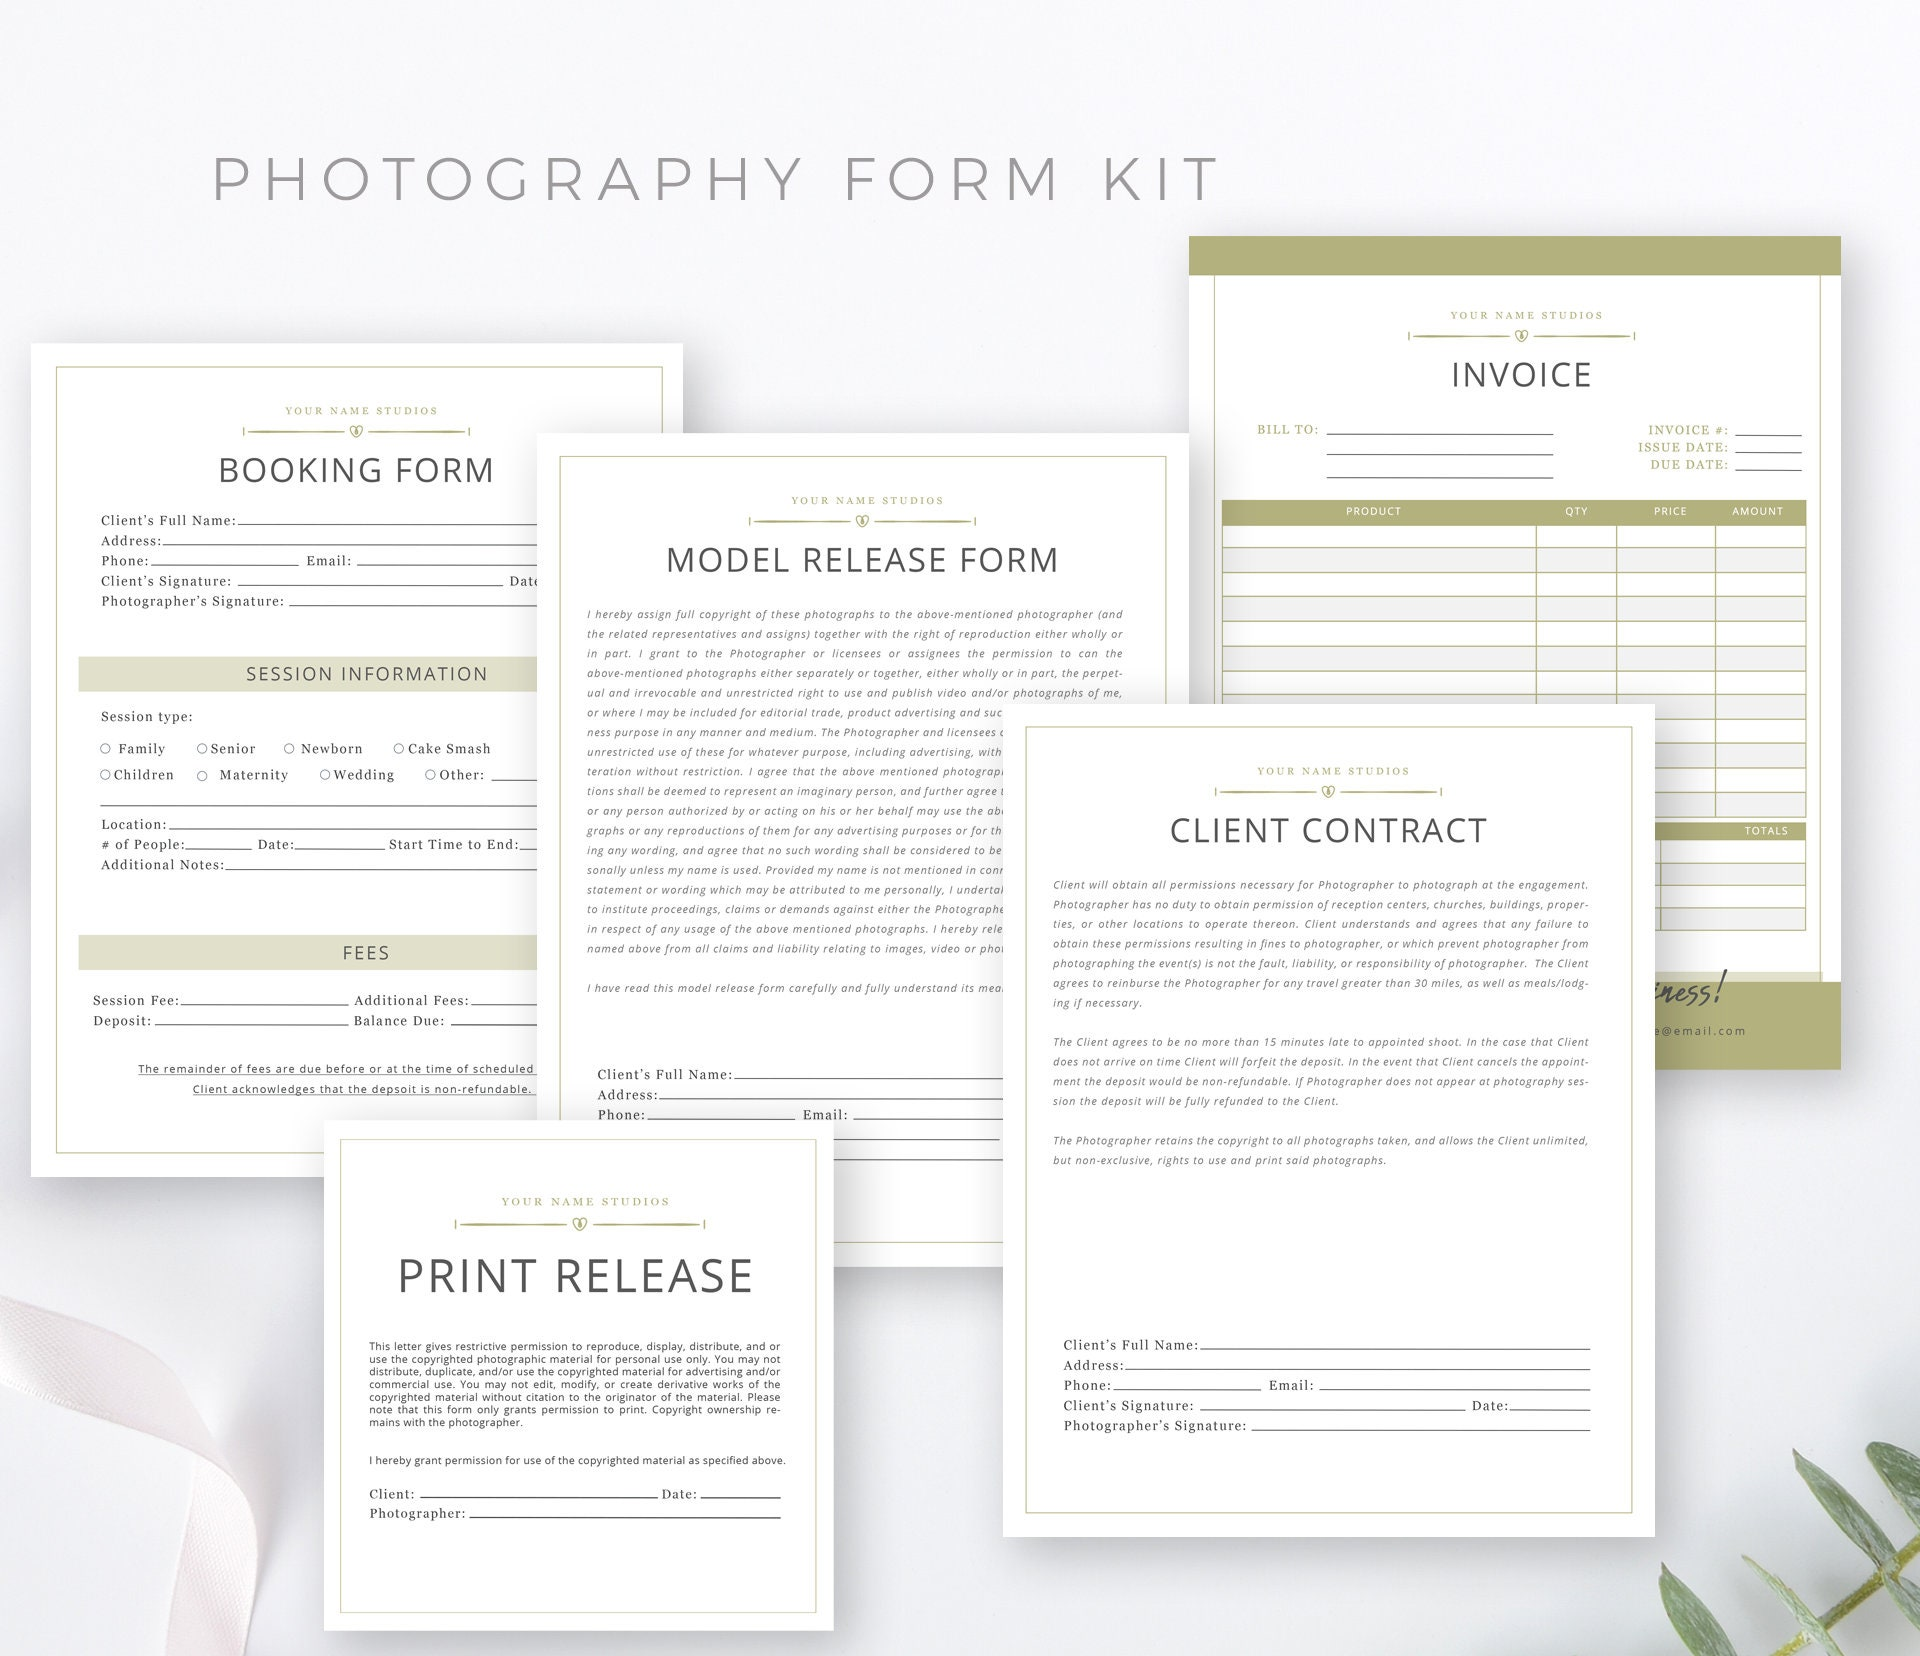 Photography Marketing Form Bundle Kit, Templates, PSD, Invoice, Model  Release, Print Release, Contract